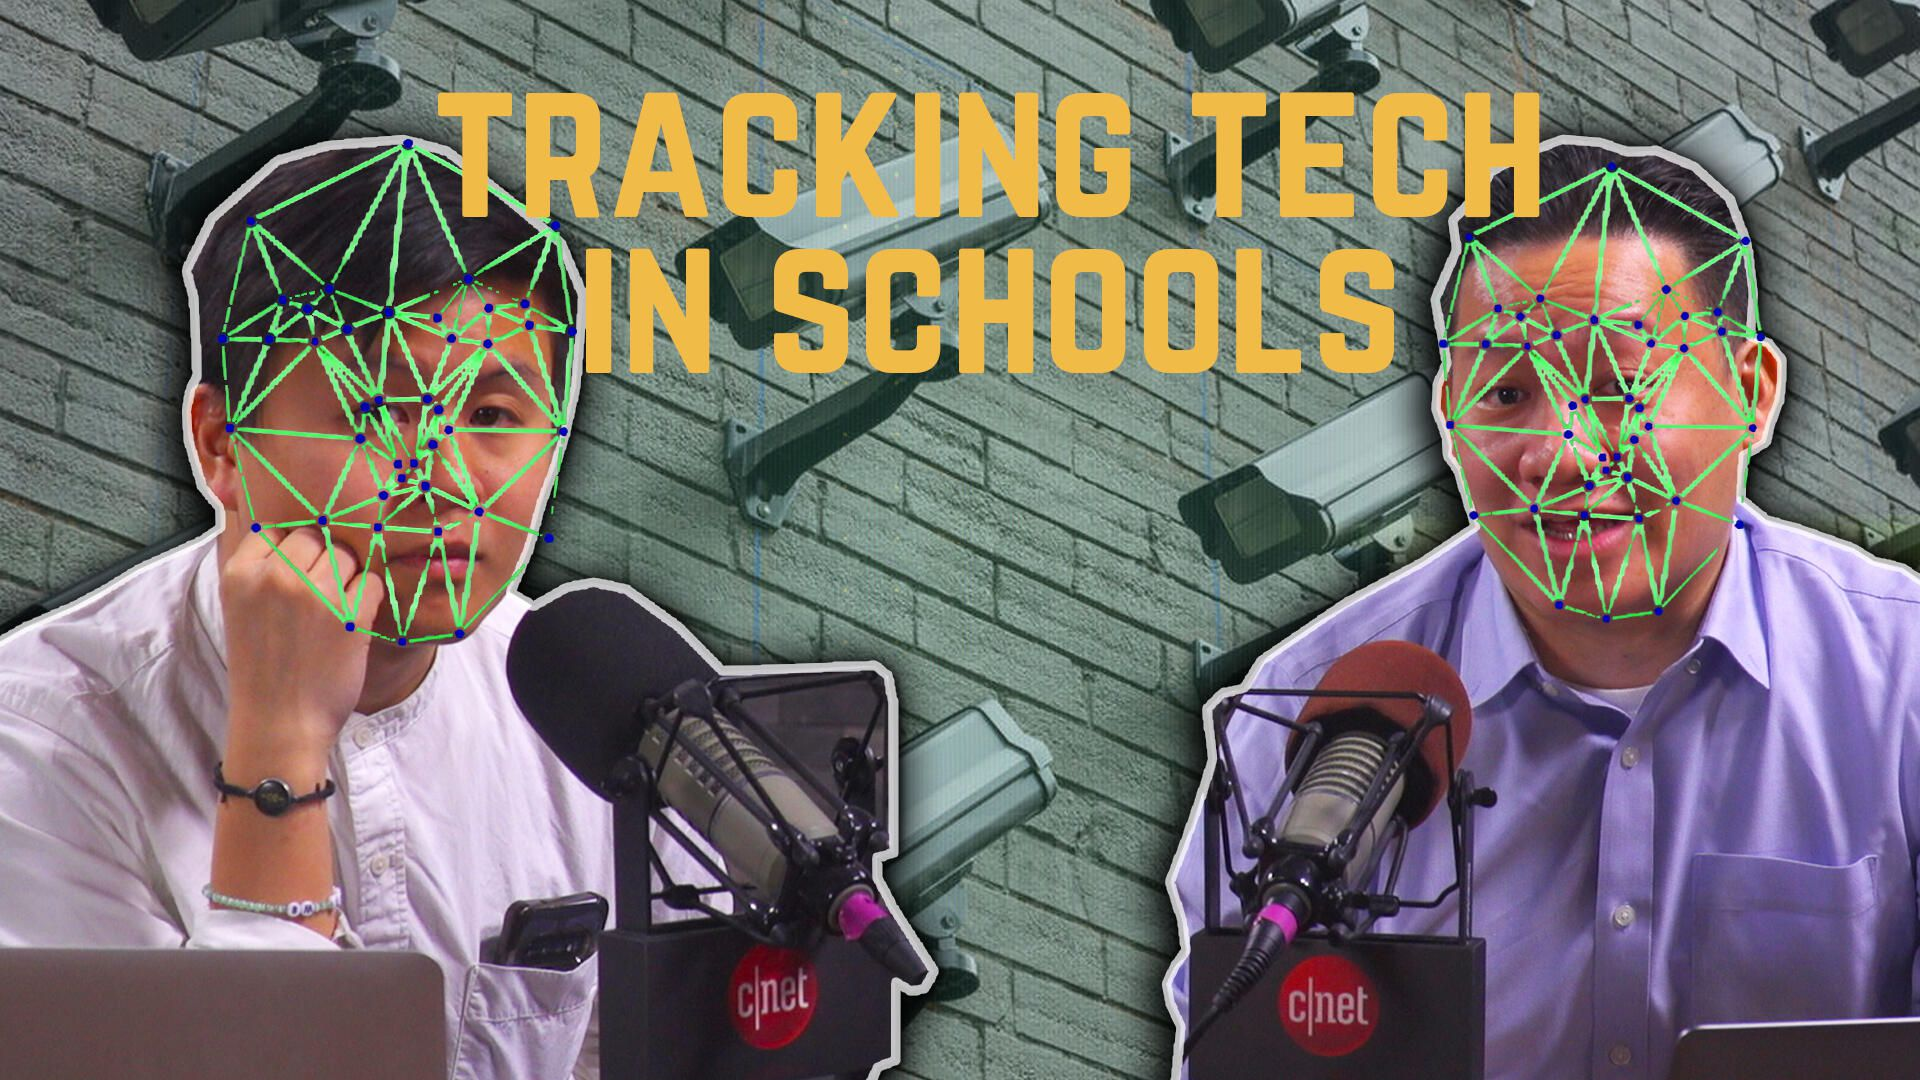 , Schools are tracking kids and that raises all kinds of questions (Daily Charge, 2/25/2020)                                                                  Qualcomm unveils latest 5G Snapdragon chip                                                                  Firefox just got a lot more private                                                                  Stitch Fix vs. Dia & Co.: Which clothing style box is best for you?                                                                  These are the best clothing subscription boxes for 2020                                                                  3 great VPNs for Xbox in 2020                                                                  Facebook invests in diverse array of projects in mission to connect the world                                                                  Norton Secure VPN vs. IPVanish: Speed, security and price compared                                                                  Norton Secure VPN vs. NordVPN: Speed, security and price compared                                                                  Squarespace vs. WordPress.com: The battle for the best place to host your website                                                                  Equifax, MGM Resorts and beyond: Every major security breach and data hack                                                                  UK Google users to lose EU data protection due to Brexit – Source CNET Internet News, iBSC Technologies - learning management services, LMS, Wordpress, CMS, Moodle, IT, Email, Web Hosting, Cloud Server,Cloud Computing